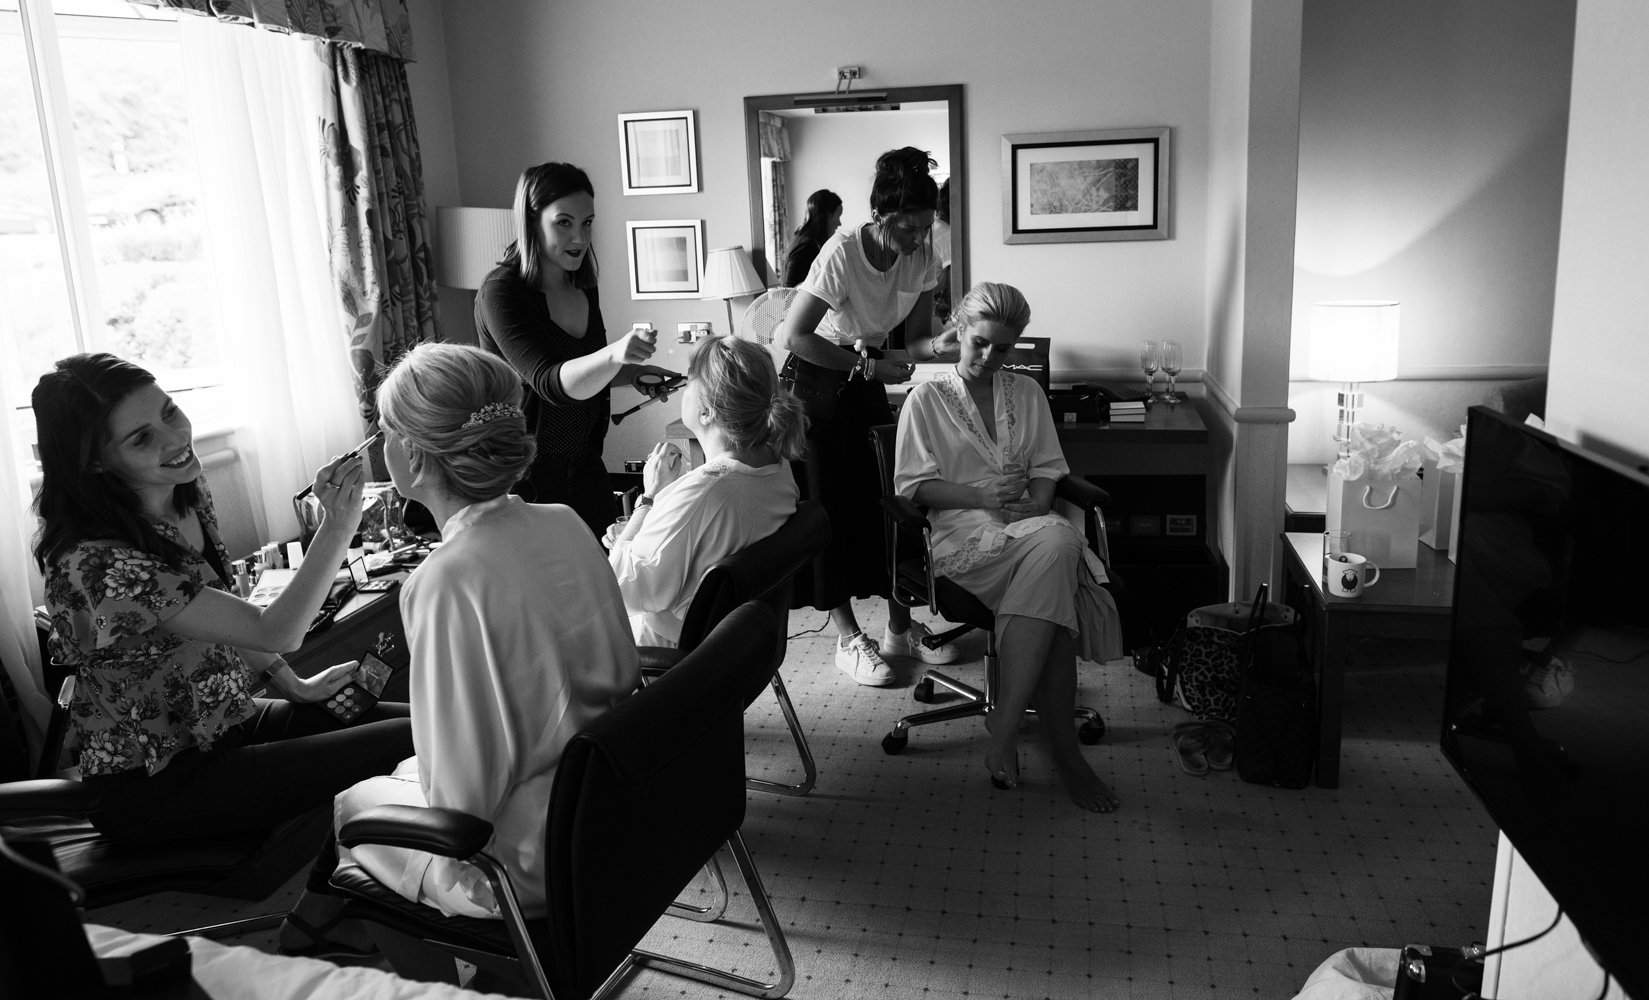 A black and white whole room photo during bridal preparations